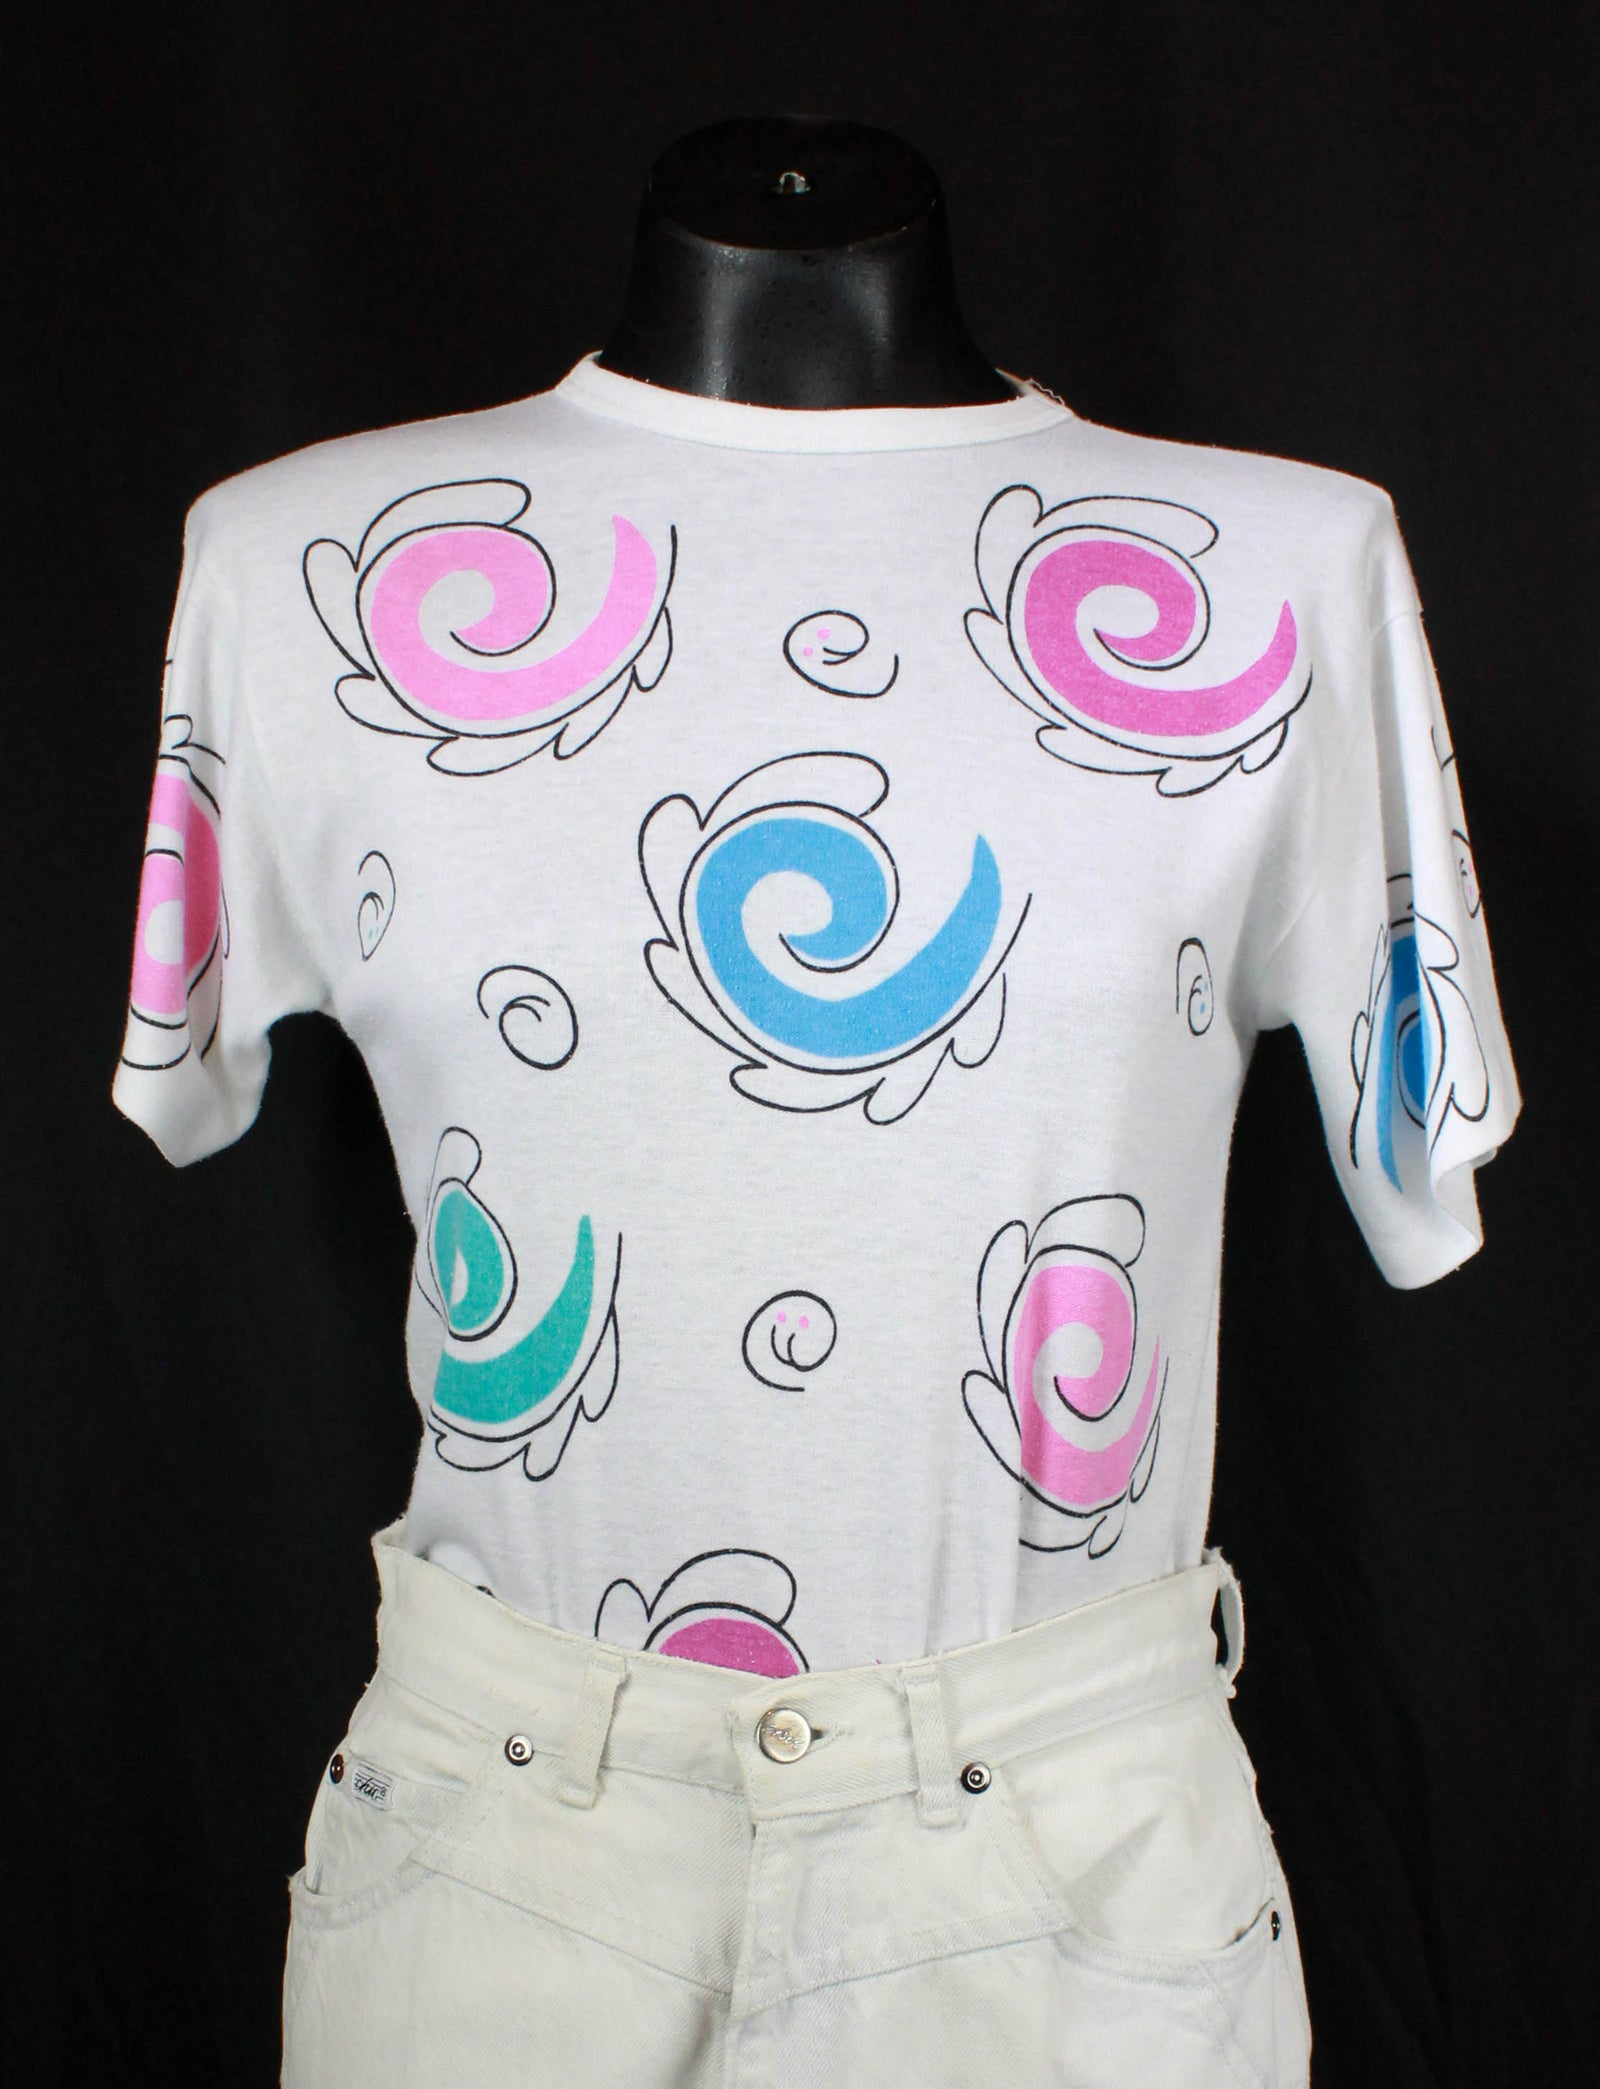 Women's Vintage 80's Swirl Graphic T Shirt White Rainbow Single Stitch Short Sleeve Small